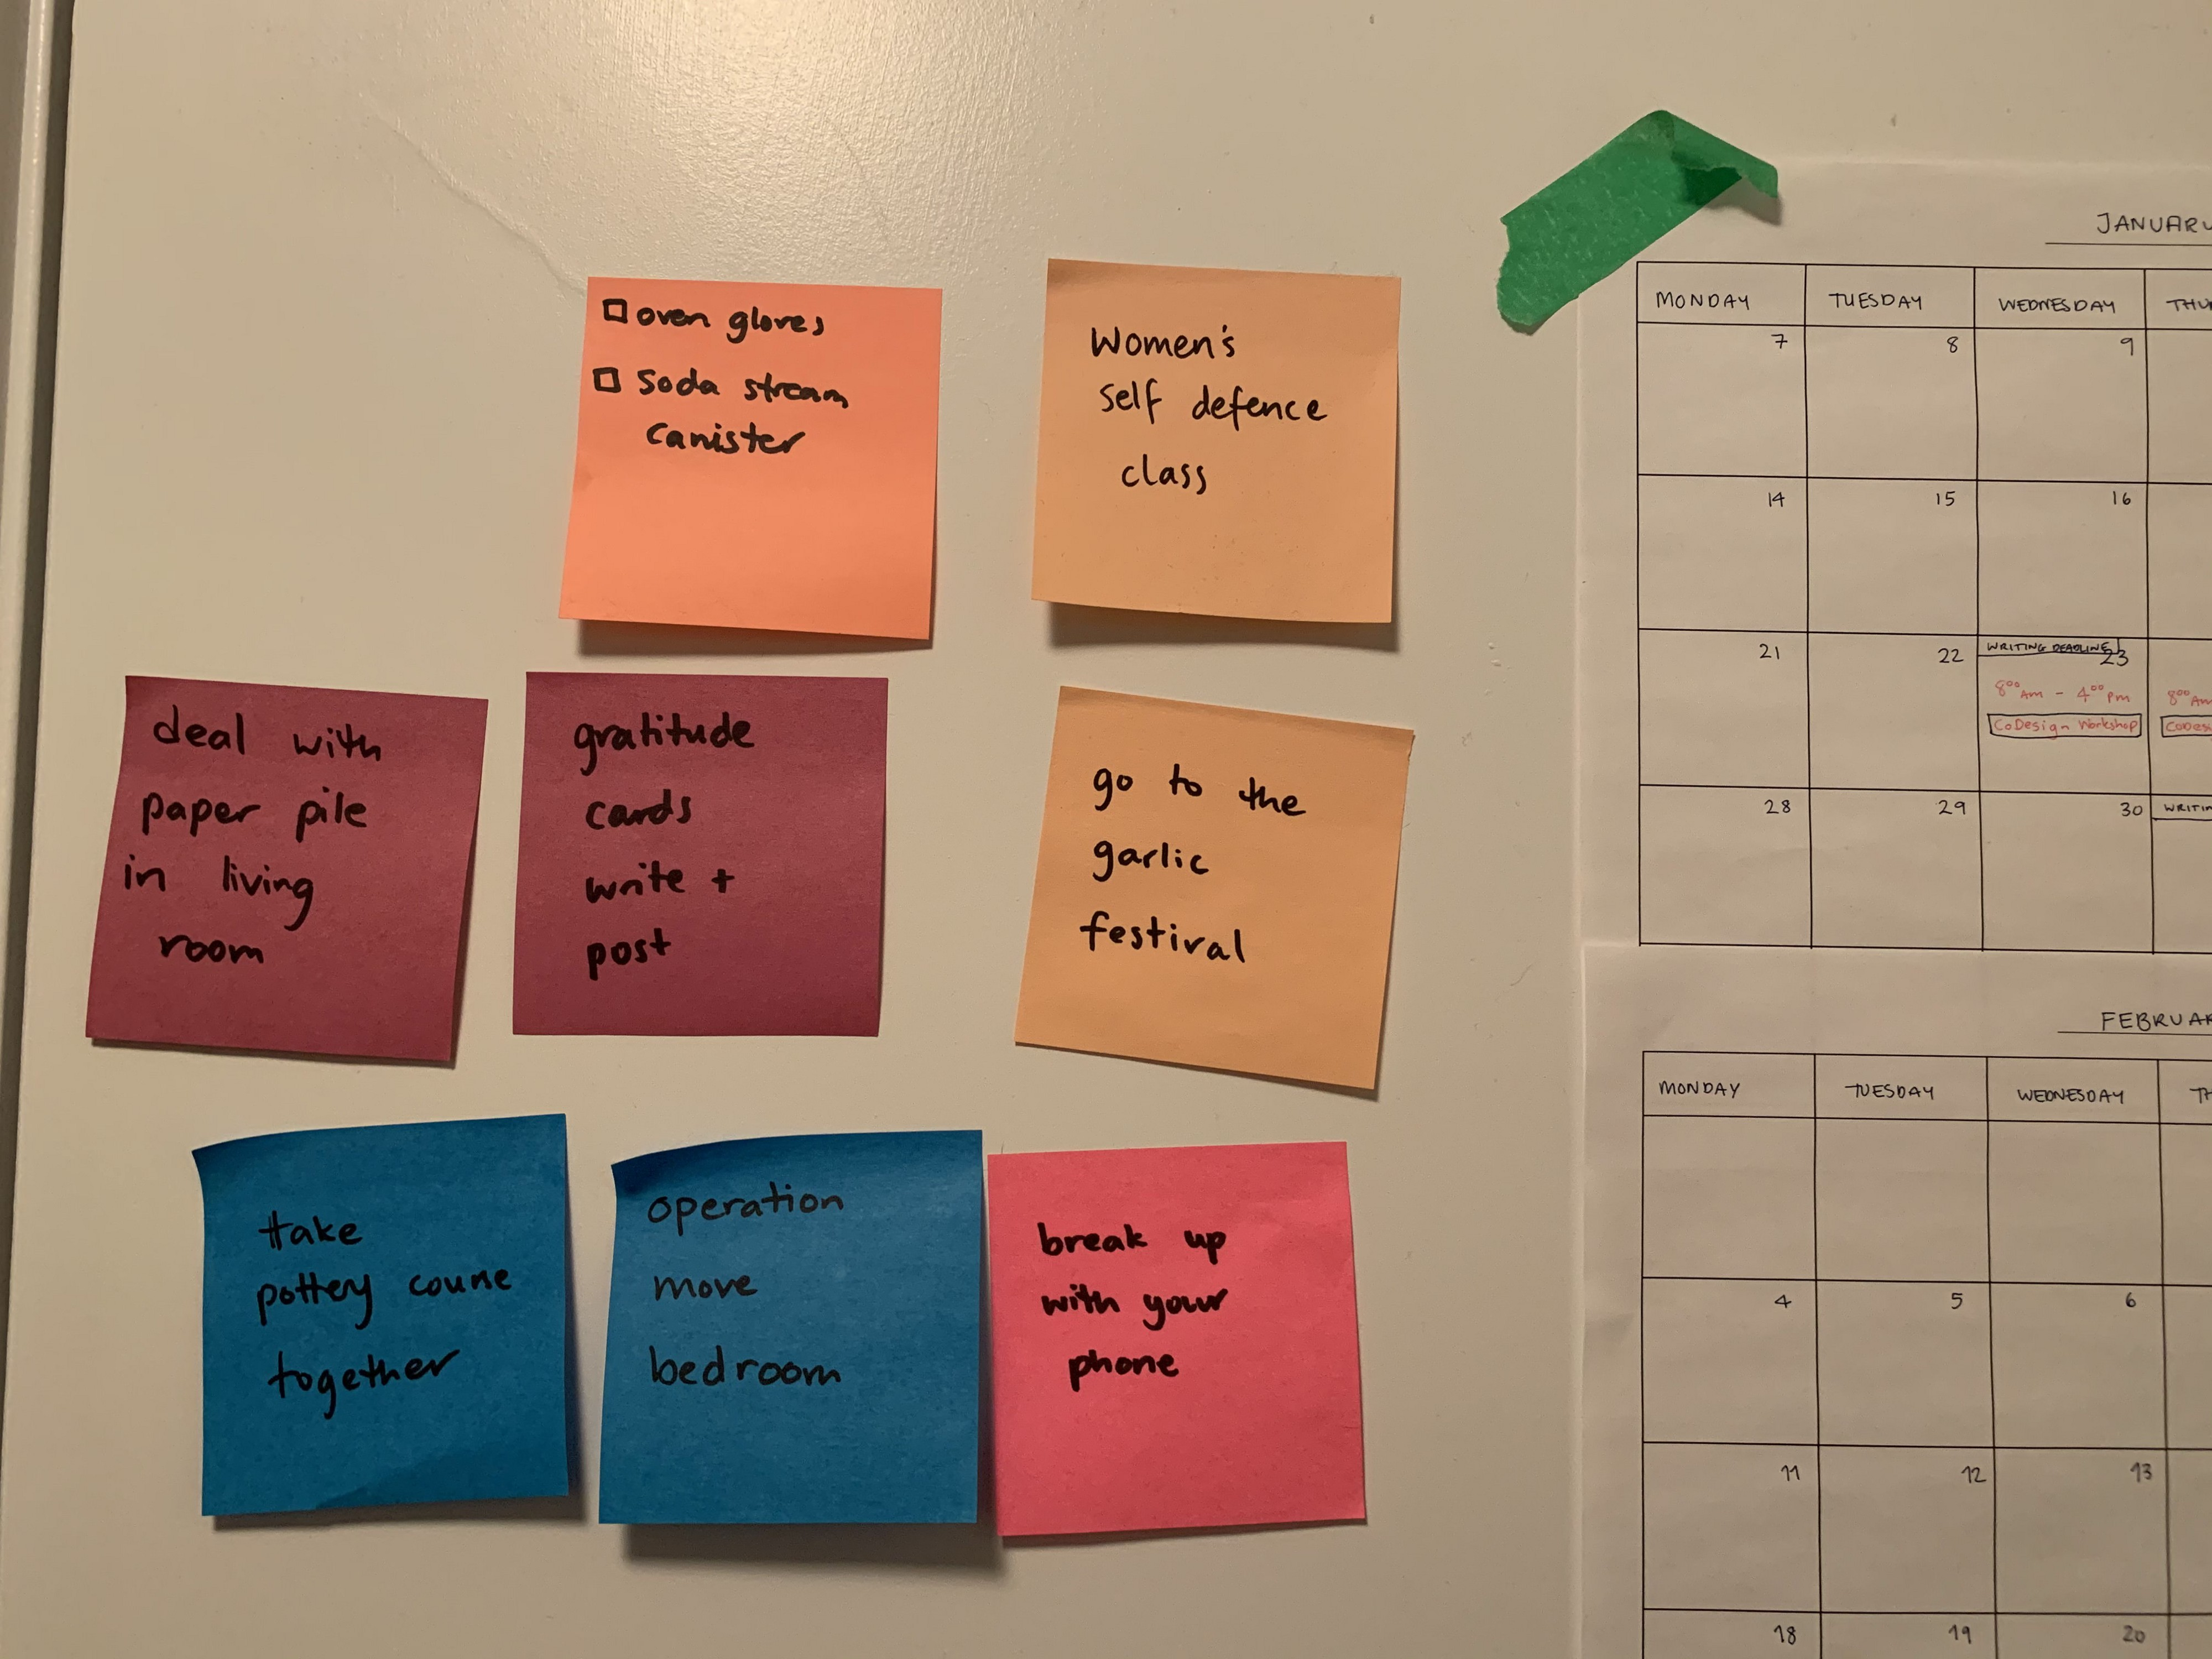 Various tasks on post its beside a calendar. Including go to garlic festival, and women's self defence class.